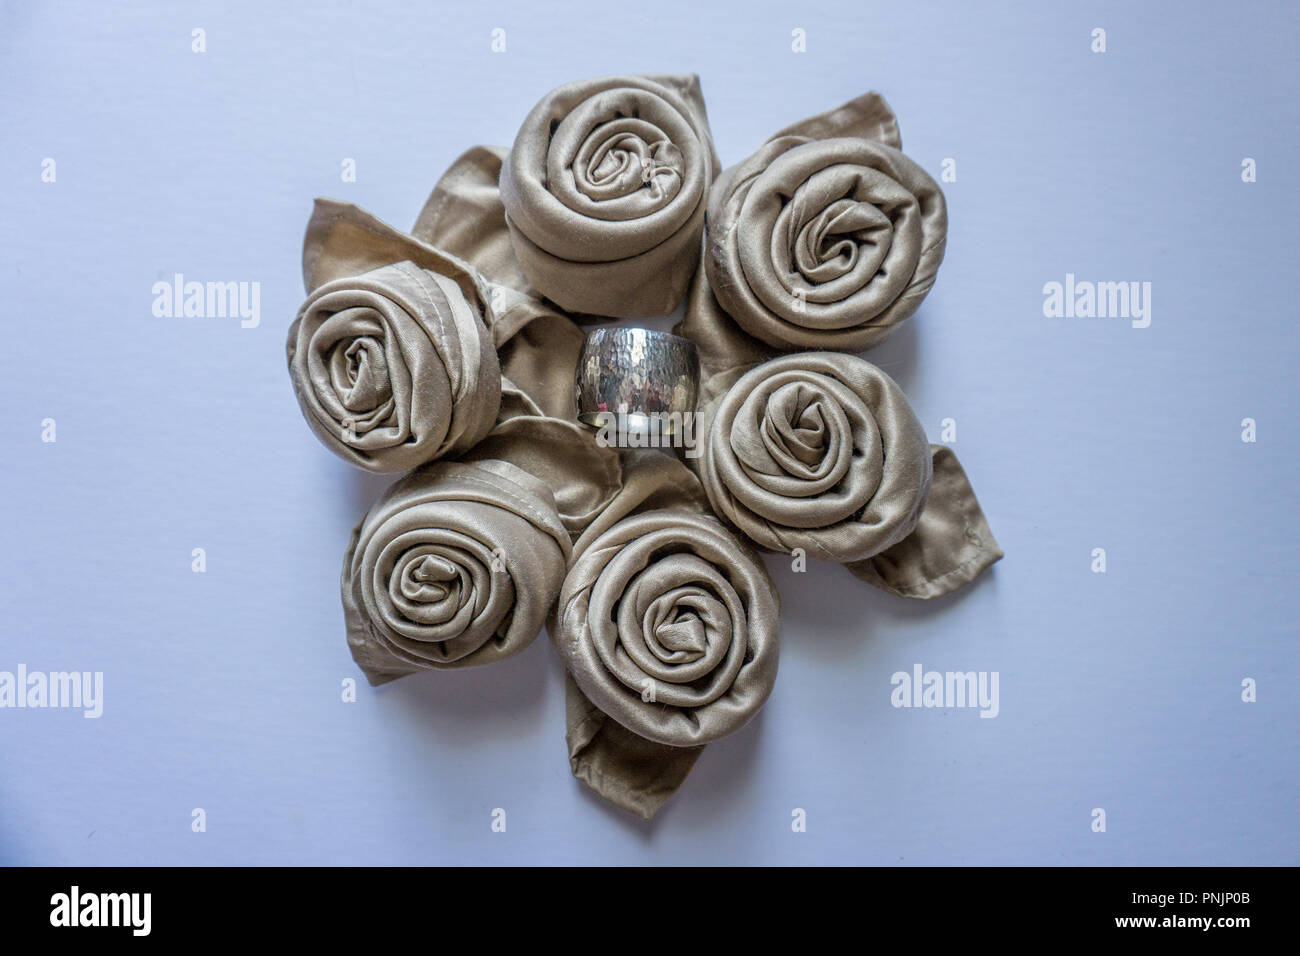 Golden Napkin Origami Roses In A Circle With Silver Metal Ring In